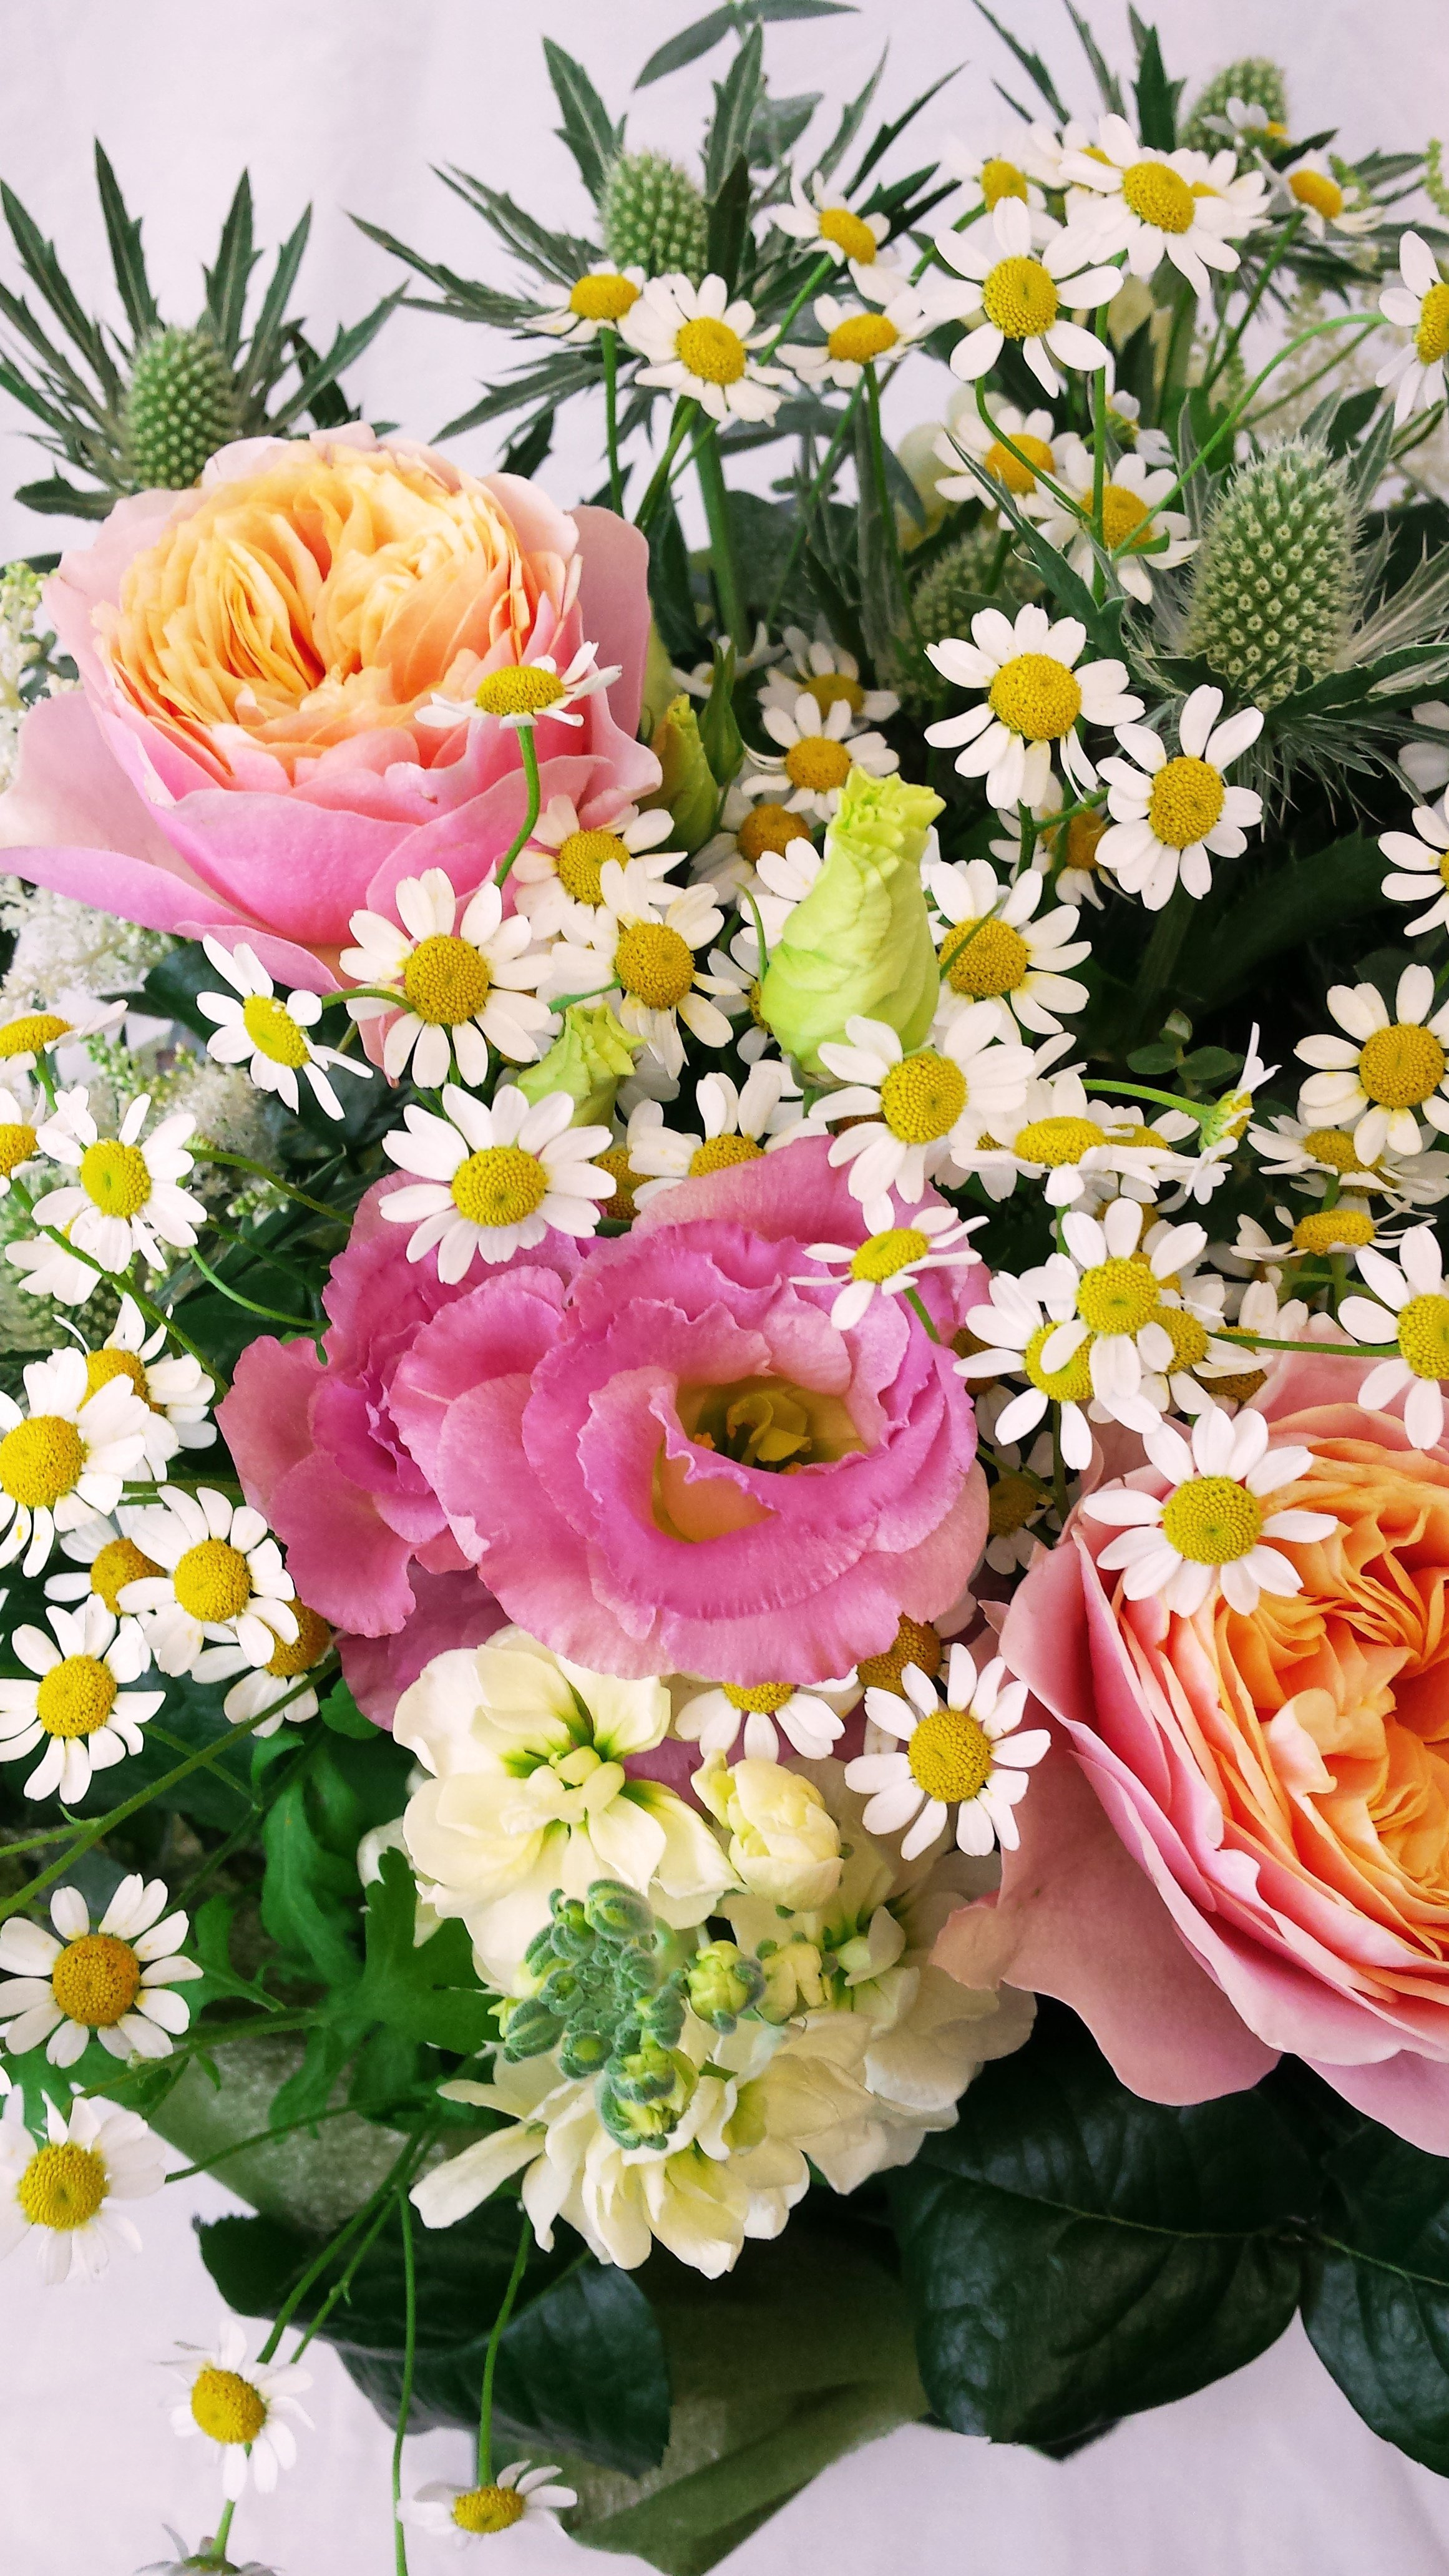 Why are flowers so popular for Mother's Day?